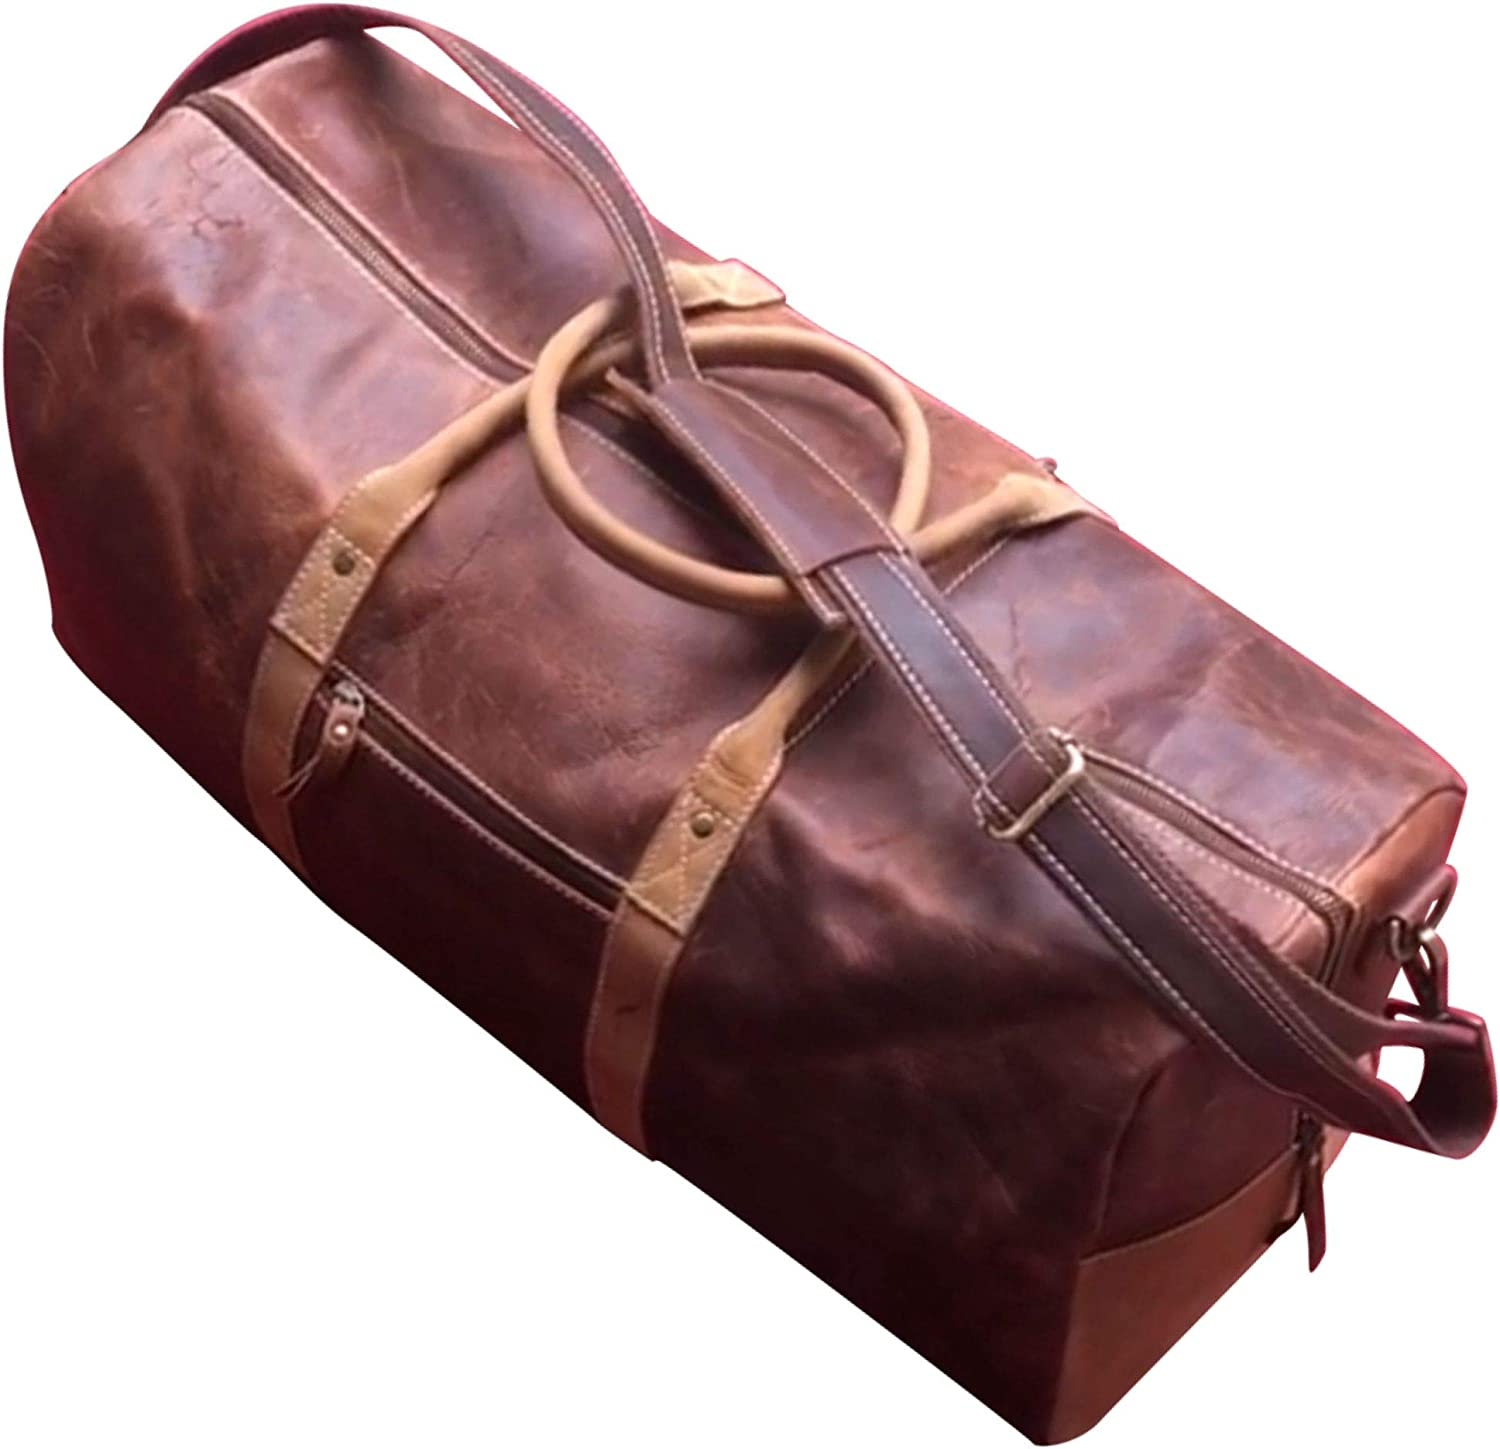 Vintage Sailing Ship Sports Gym Bag with Shoes Compartment Travel Duffel Bag for Men Women